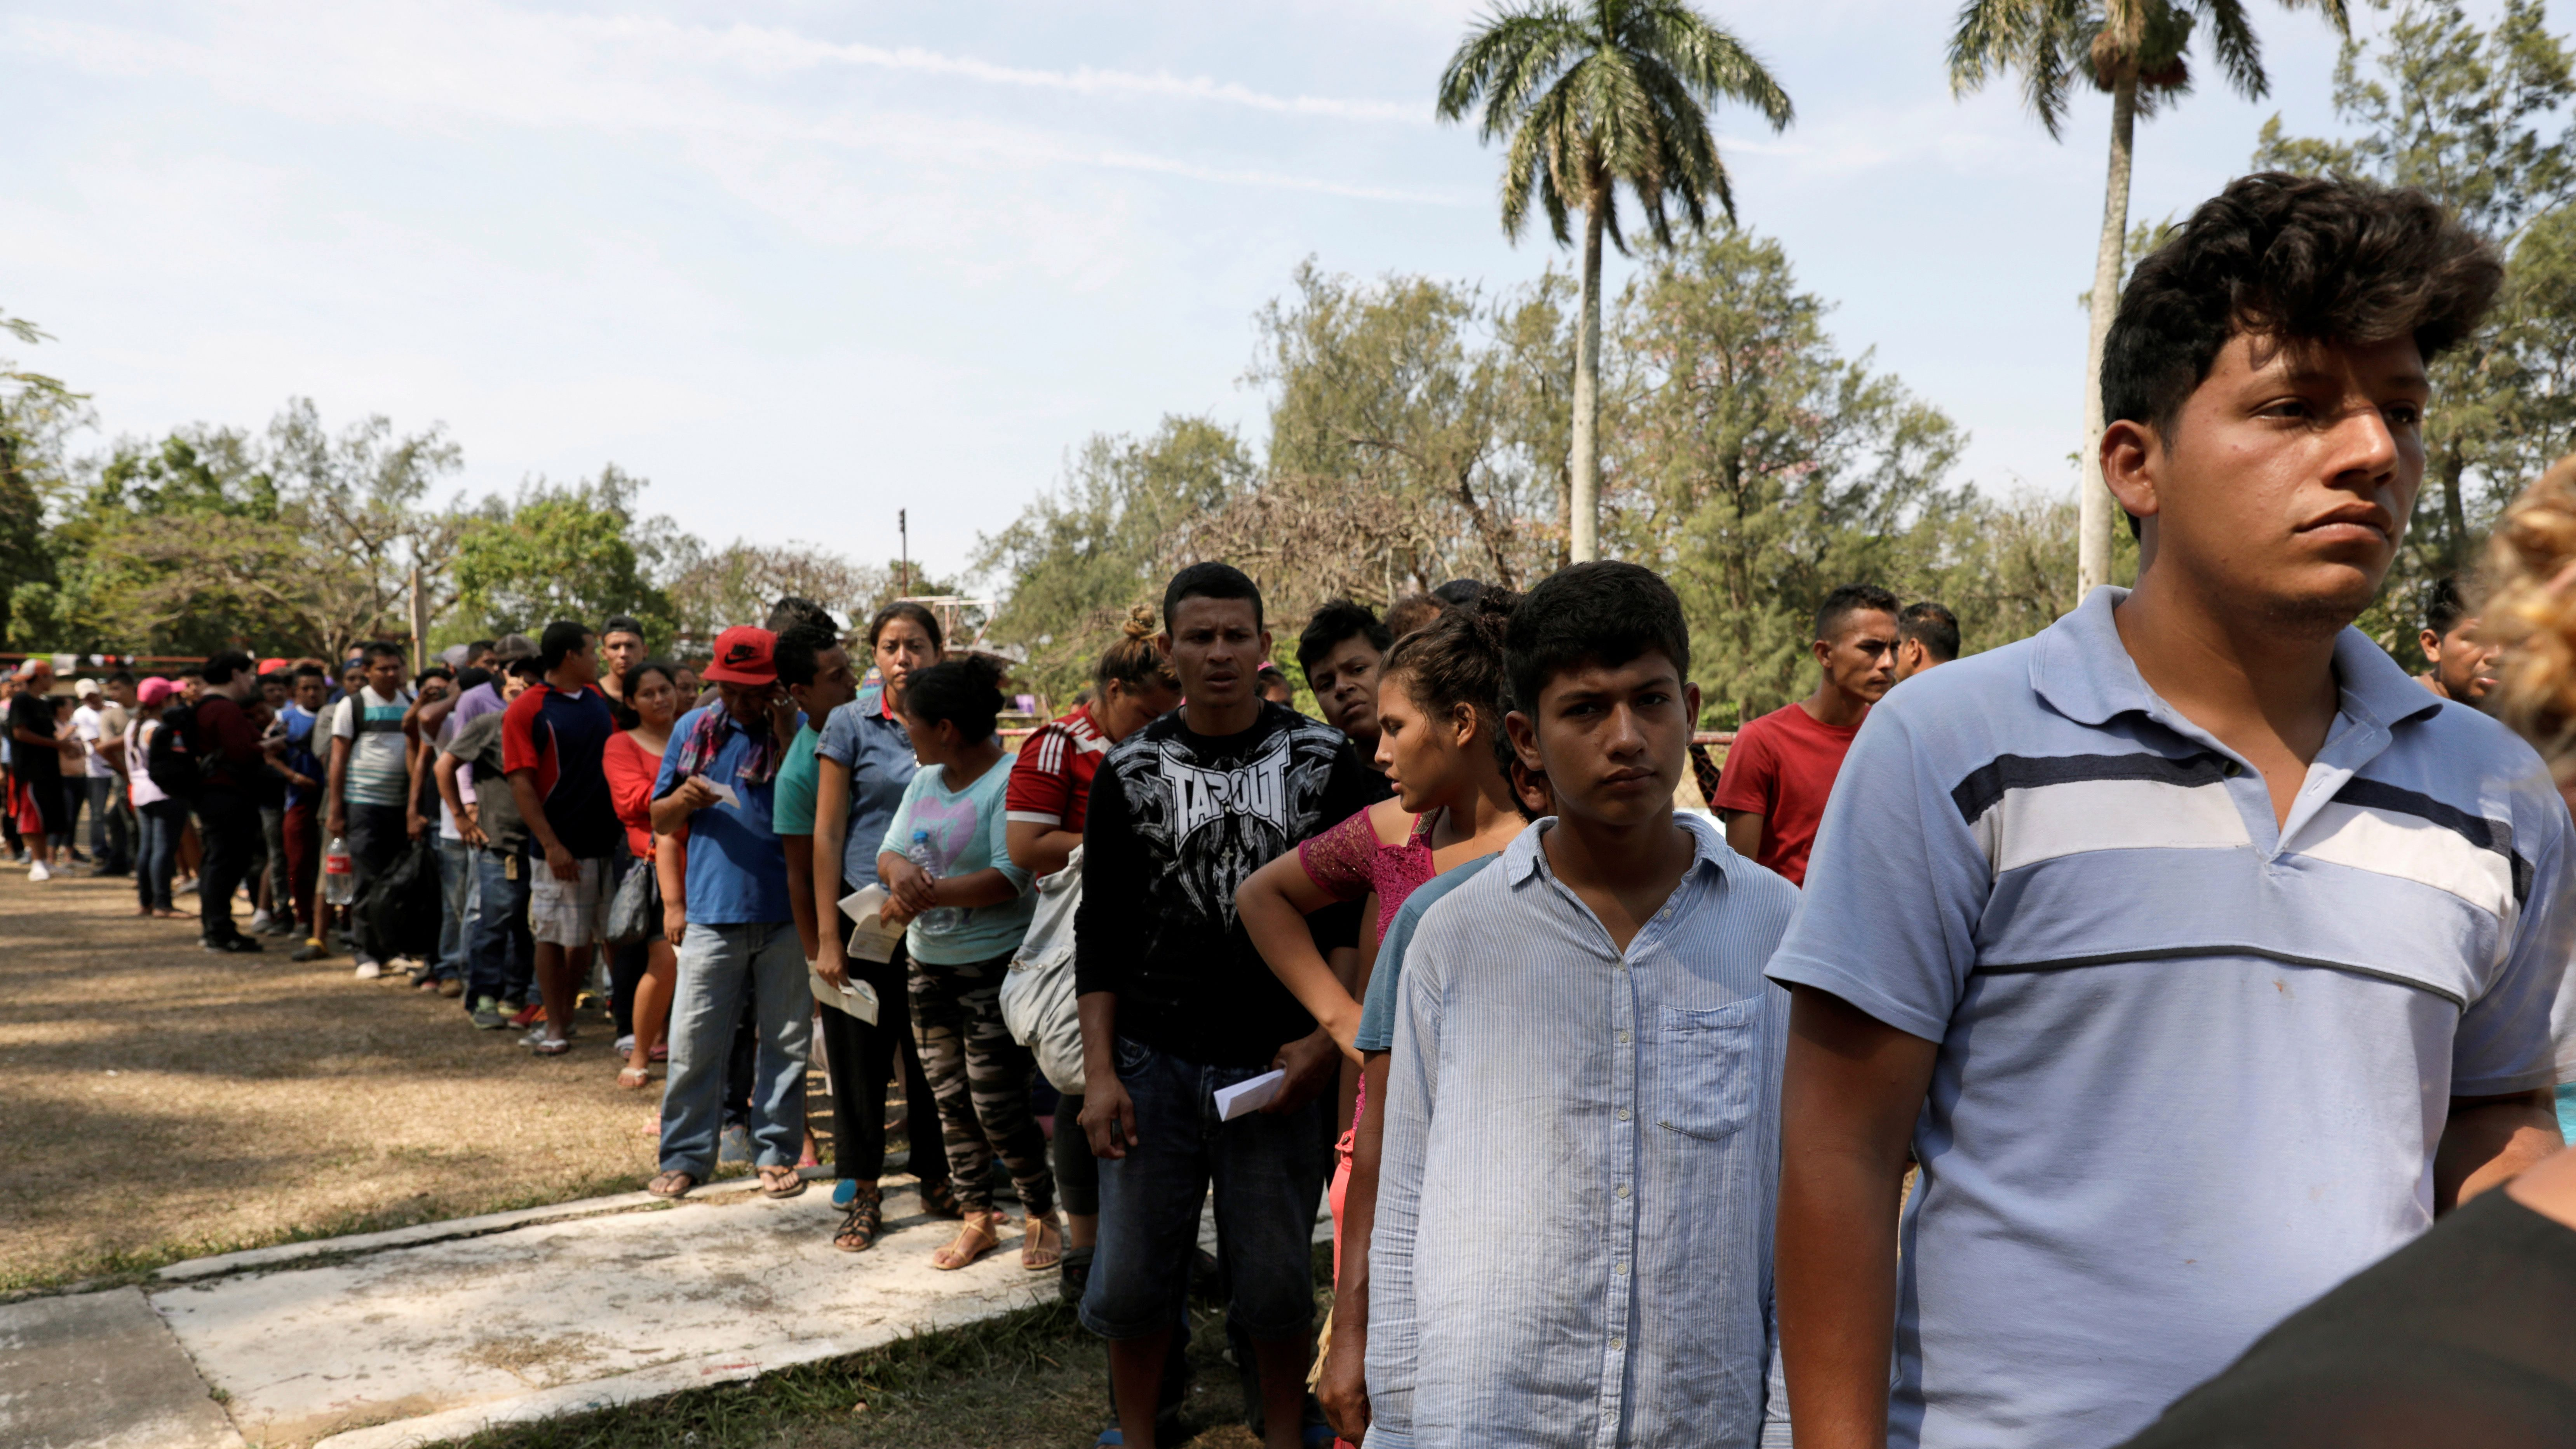 Central American migrants, part of a caravan moving through Mexico toward the U.S. border